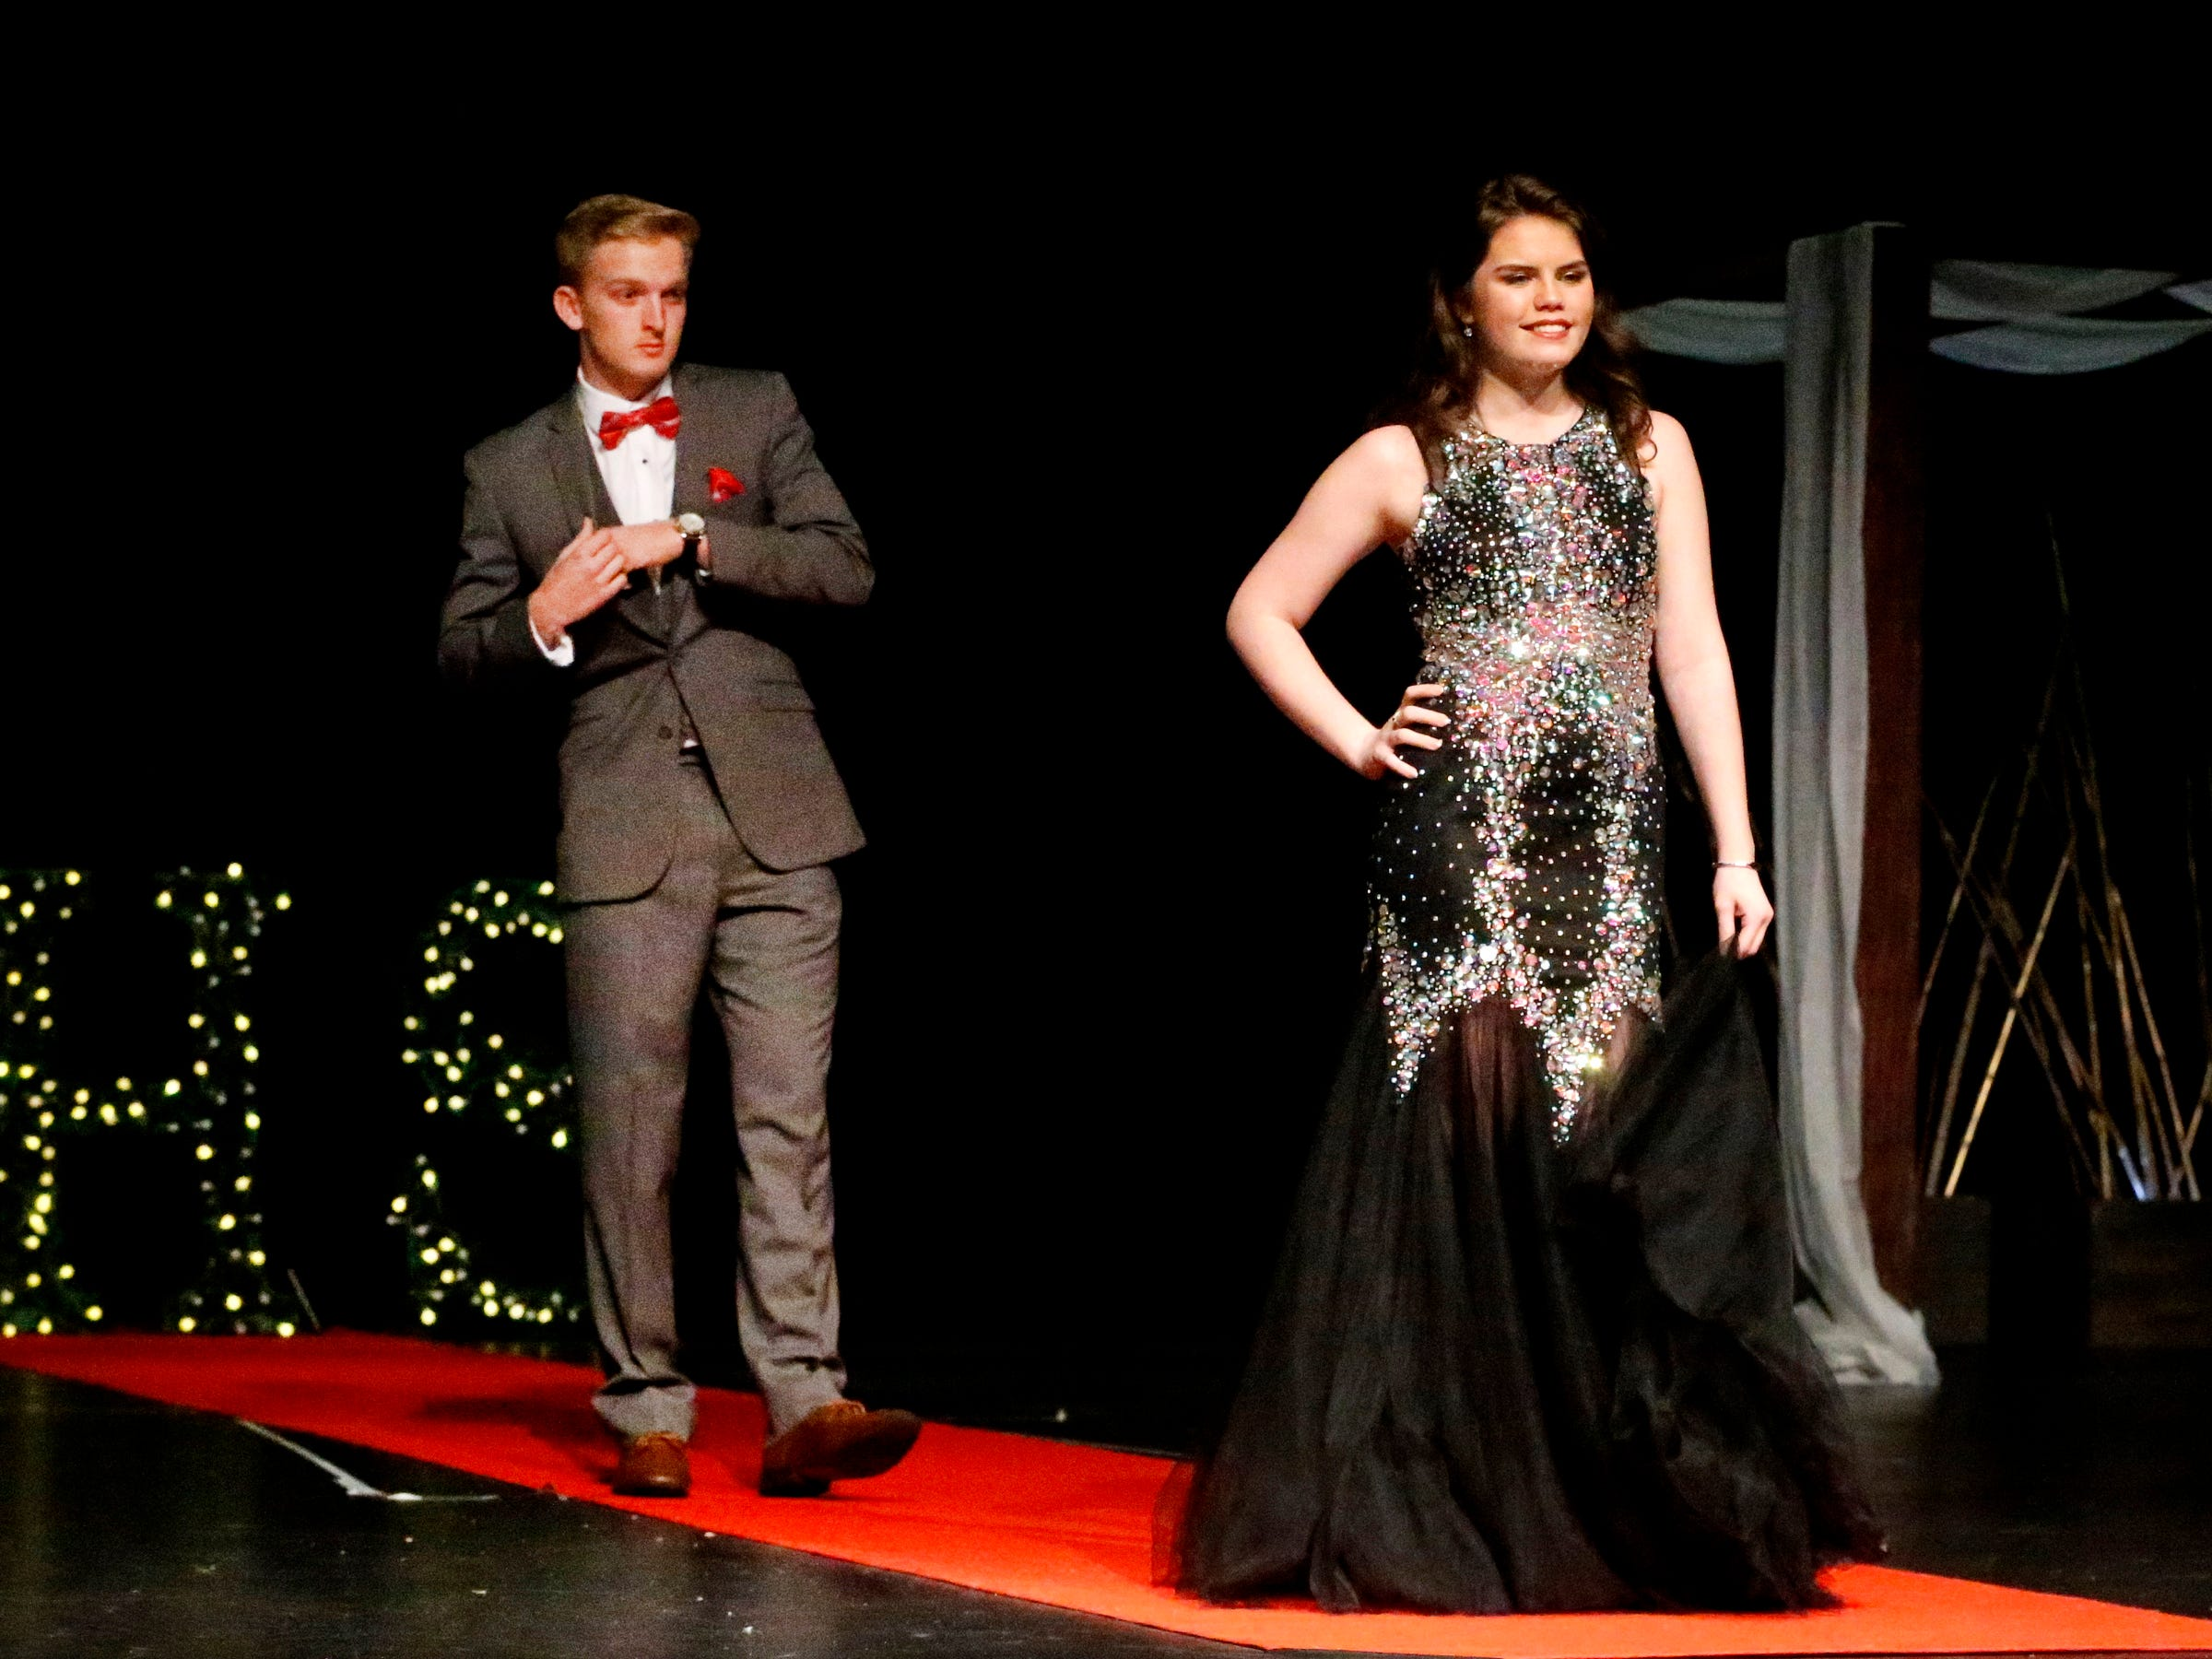 Atlanta Powell steps forward to show off her dress as Jaden Lasley waits to show off his tux during the Siegel Prom Fashion show on Thursday, Feb. 14, 2019.